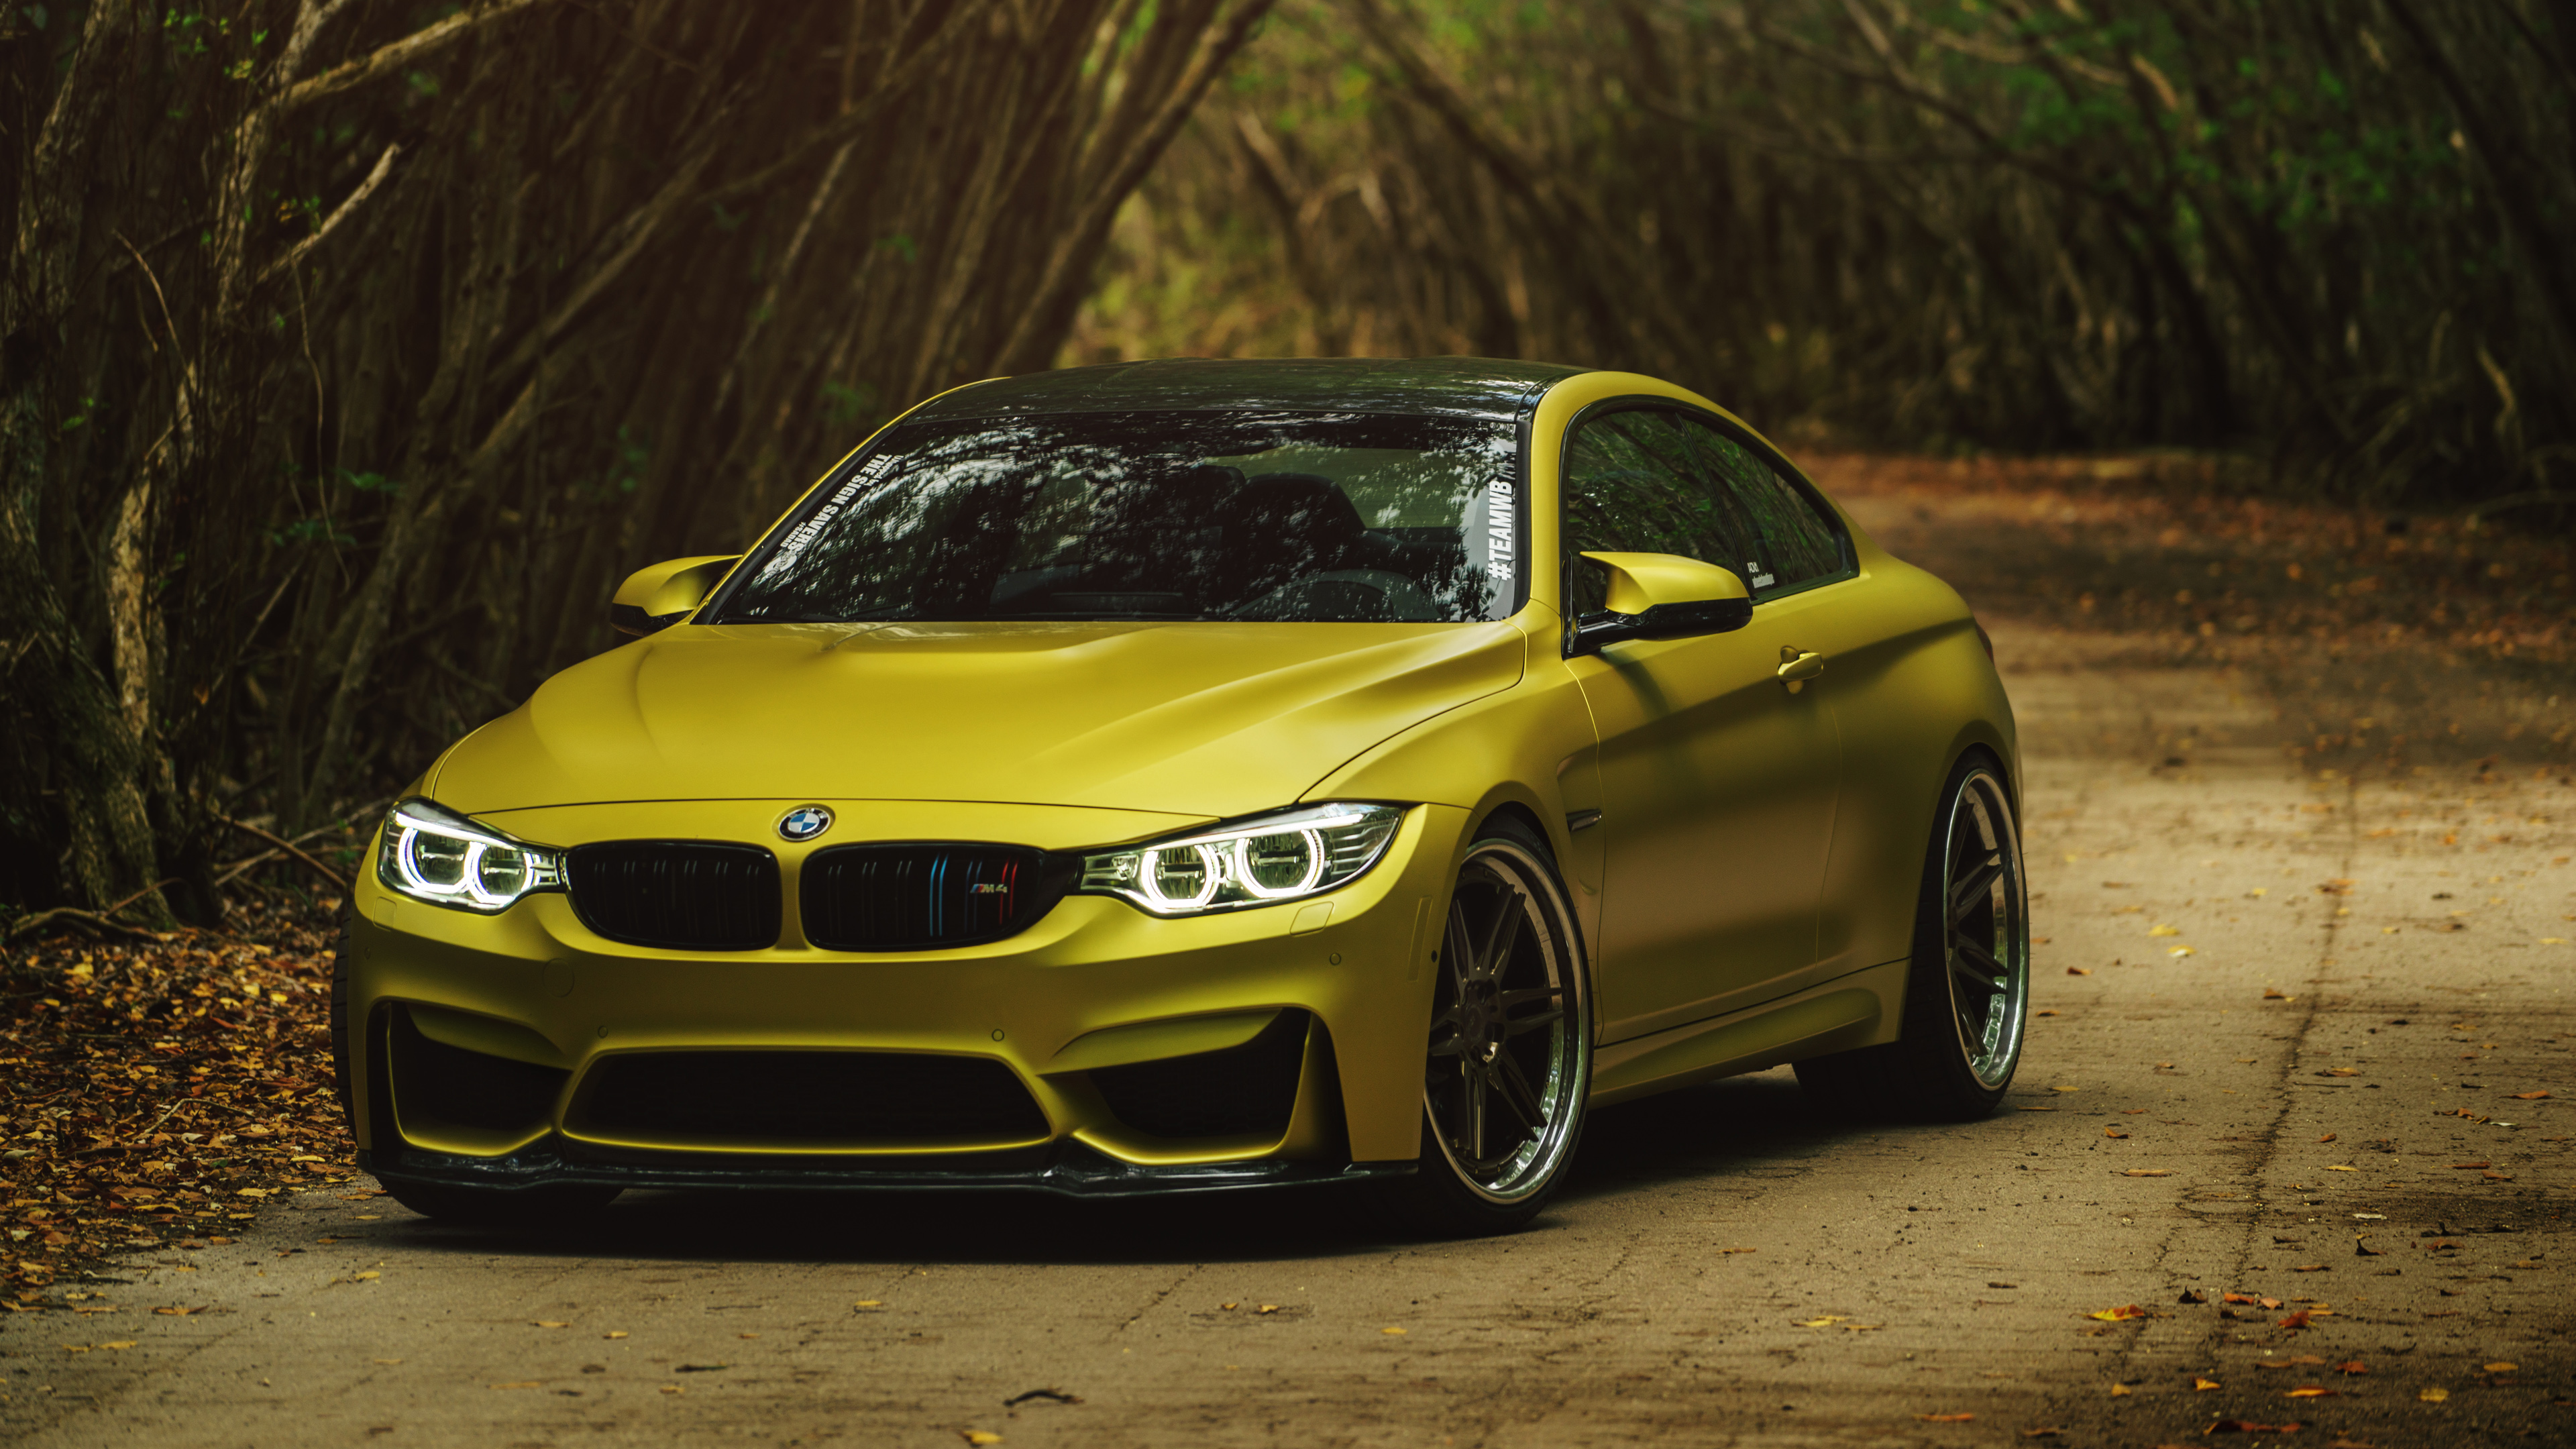 Adv1 Ss Austin Yellow Bmw M4 Wallpaper Hd Car Wallpapers